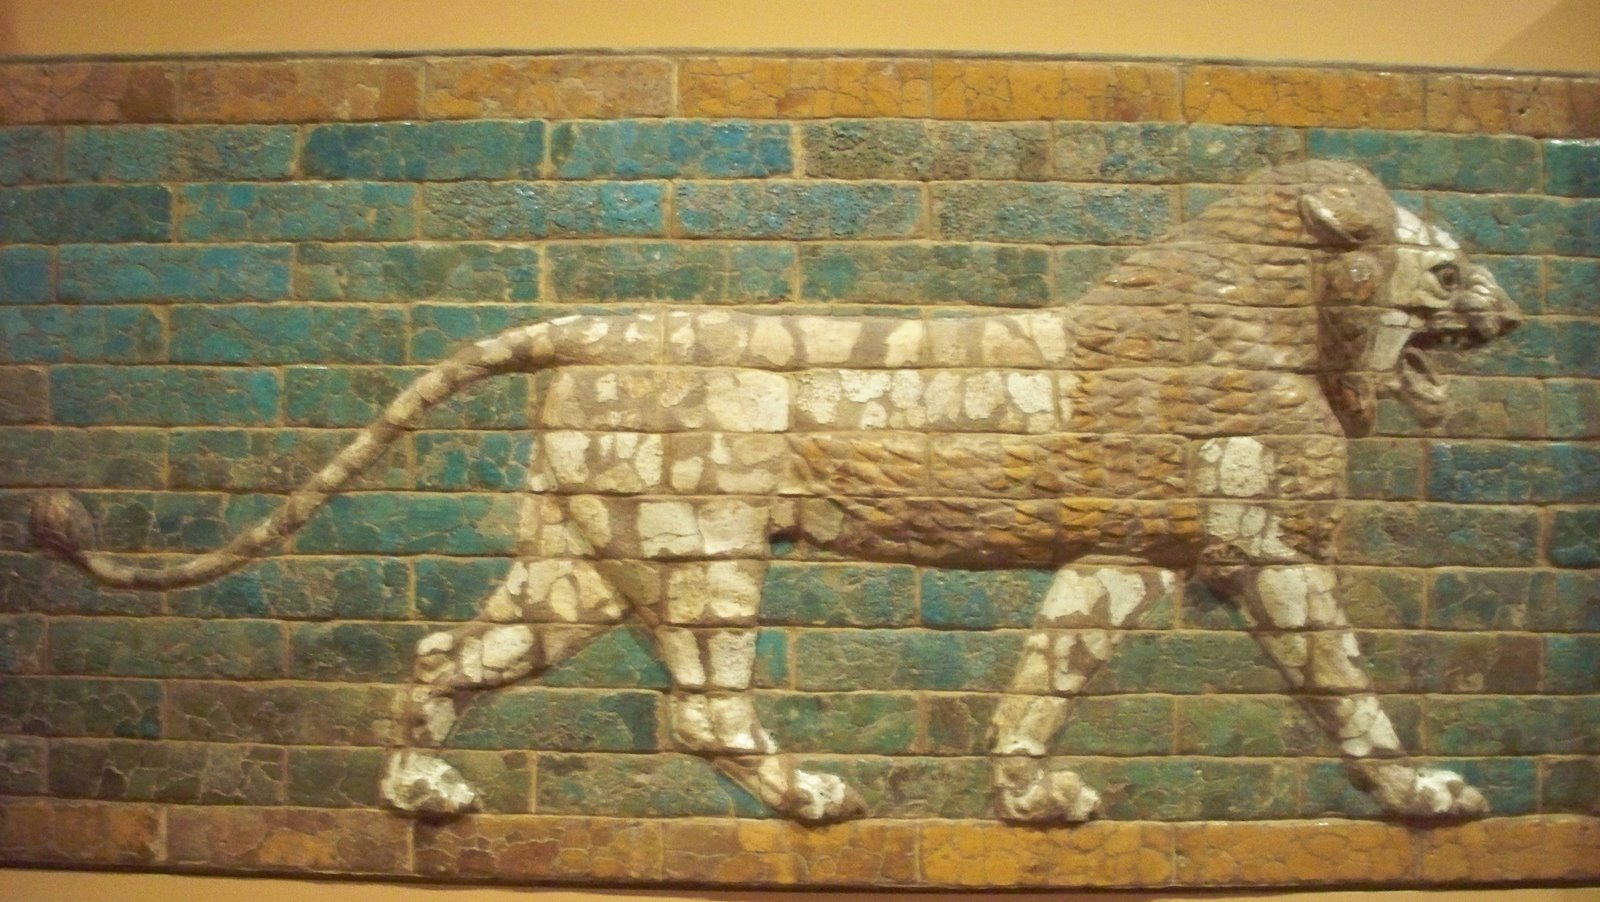 Striding Lion of Bablyon --------- at The University of Chicago's Oriental Institute